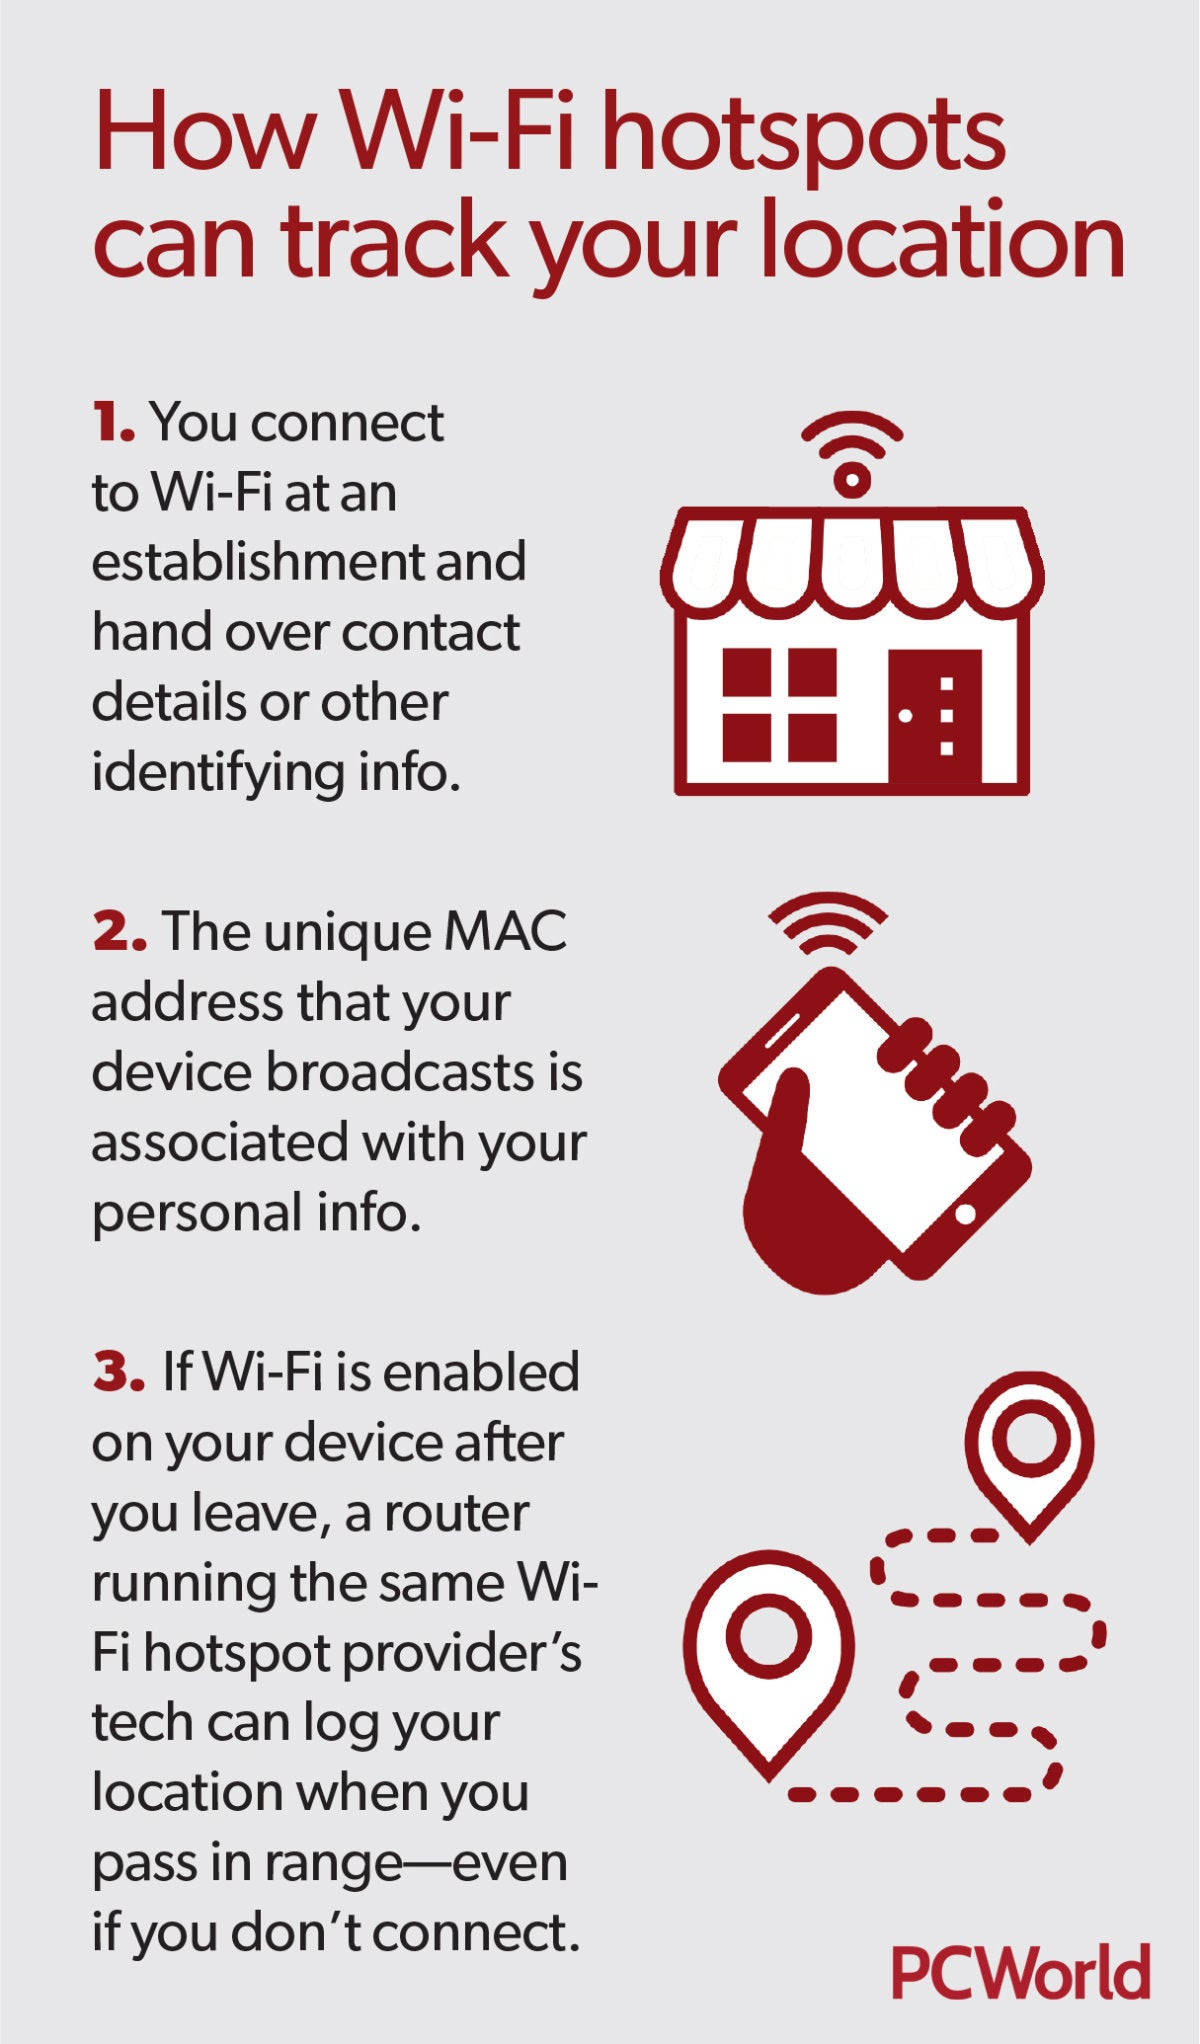 NEWS - How 'free' Wi-Fi hotspots can track your location